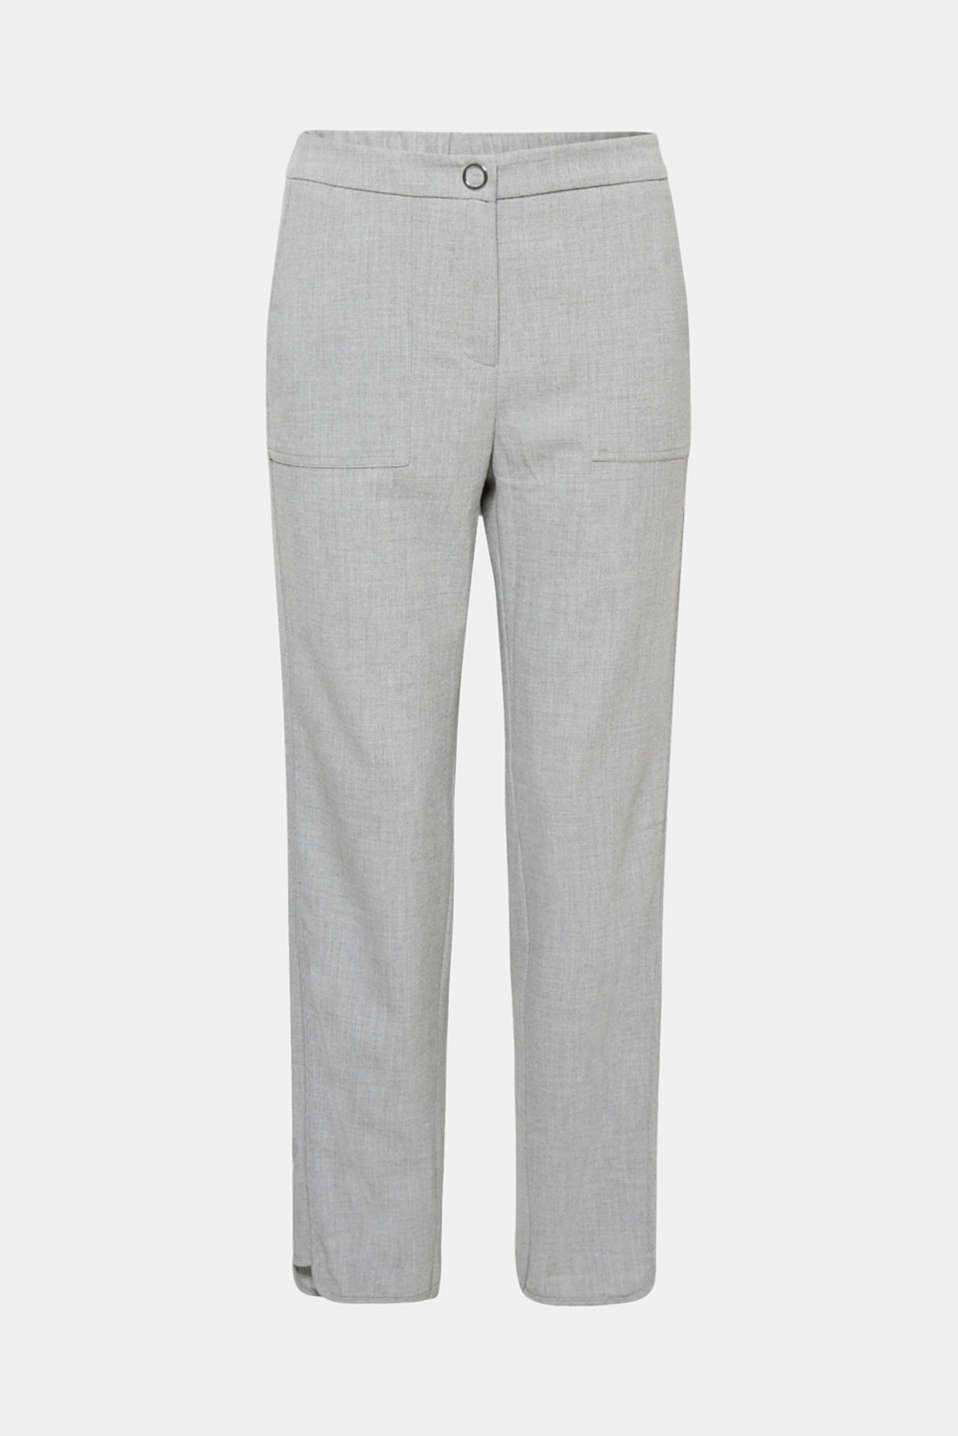 Chic, casual and comfortable, these stretchy trousers get their special look from the combination of flowing crêpe, a comfortable elasticated waistband and tonal tuxedo stripes!